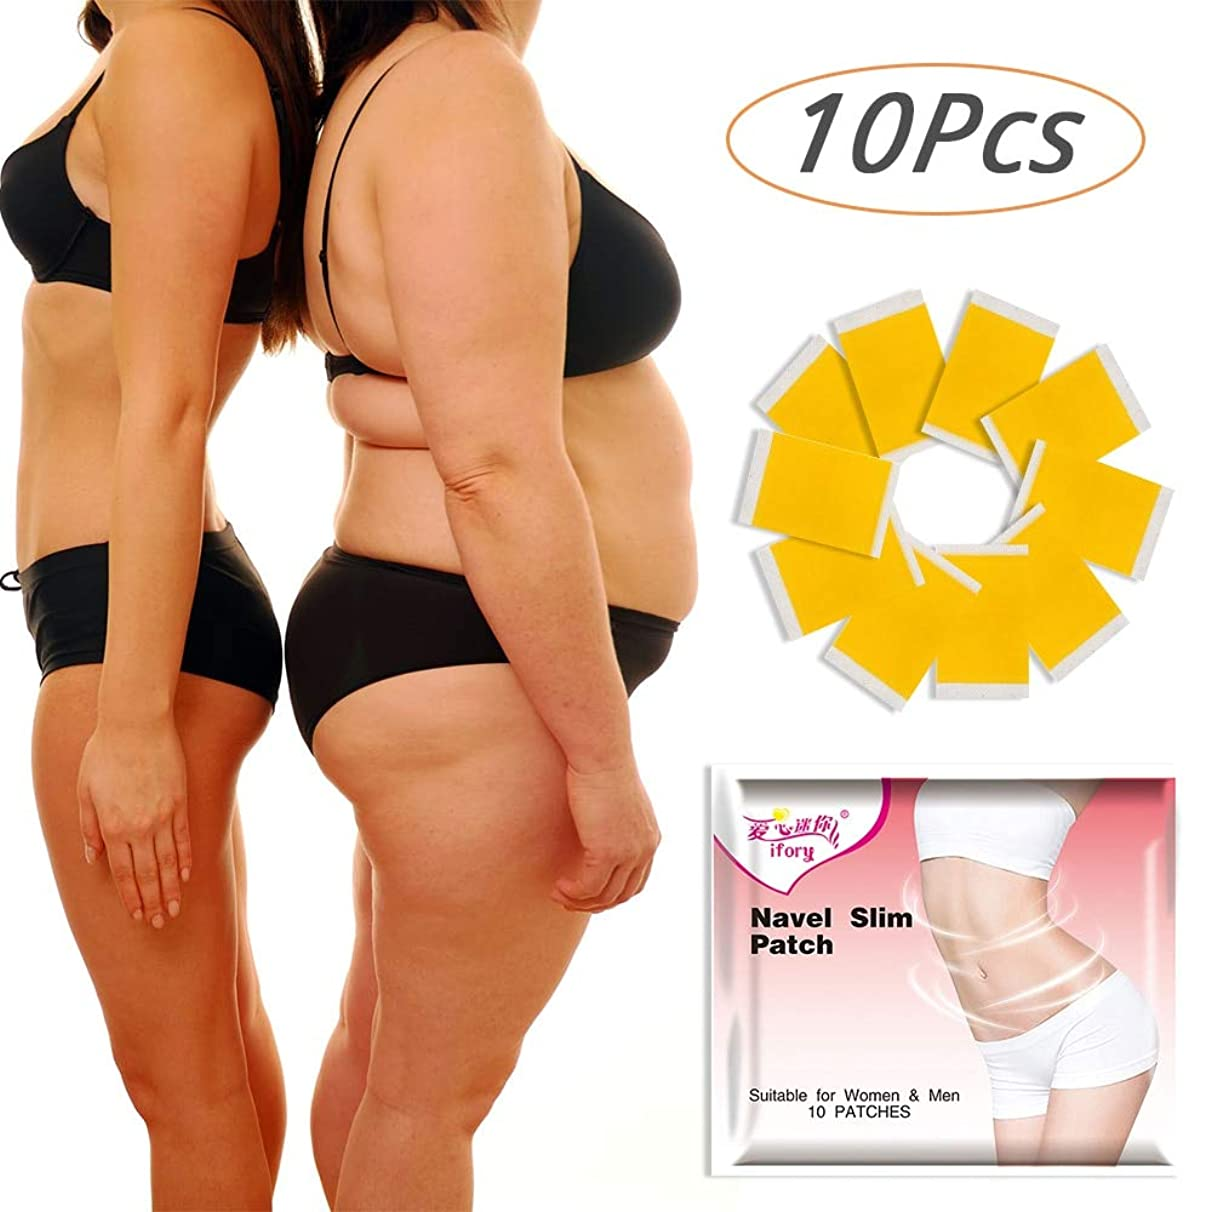 Weight Loss Ifory 10 Pieces/Bag Slim Patch Navel Stick Slimming Creams Fat Burner Body Shaper